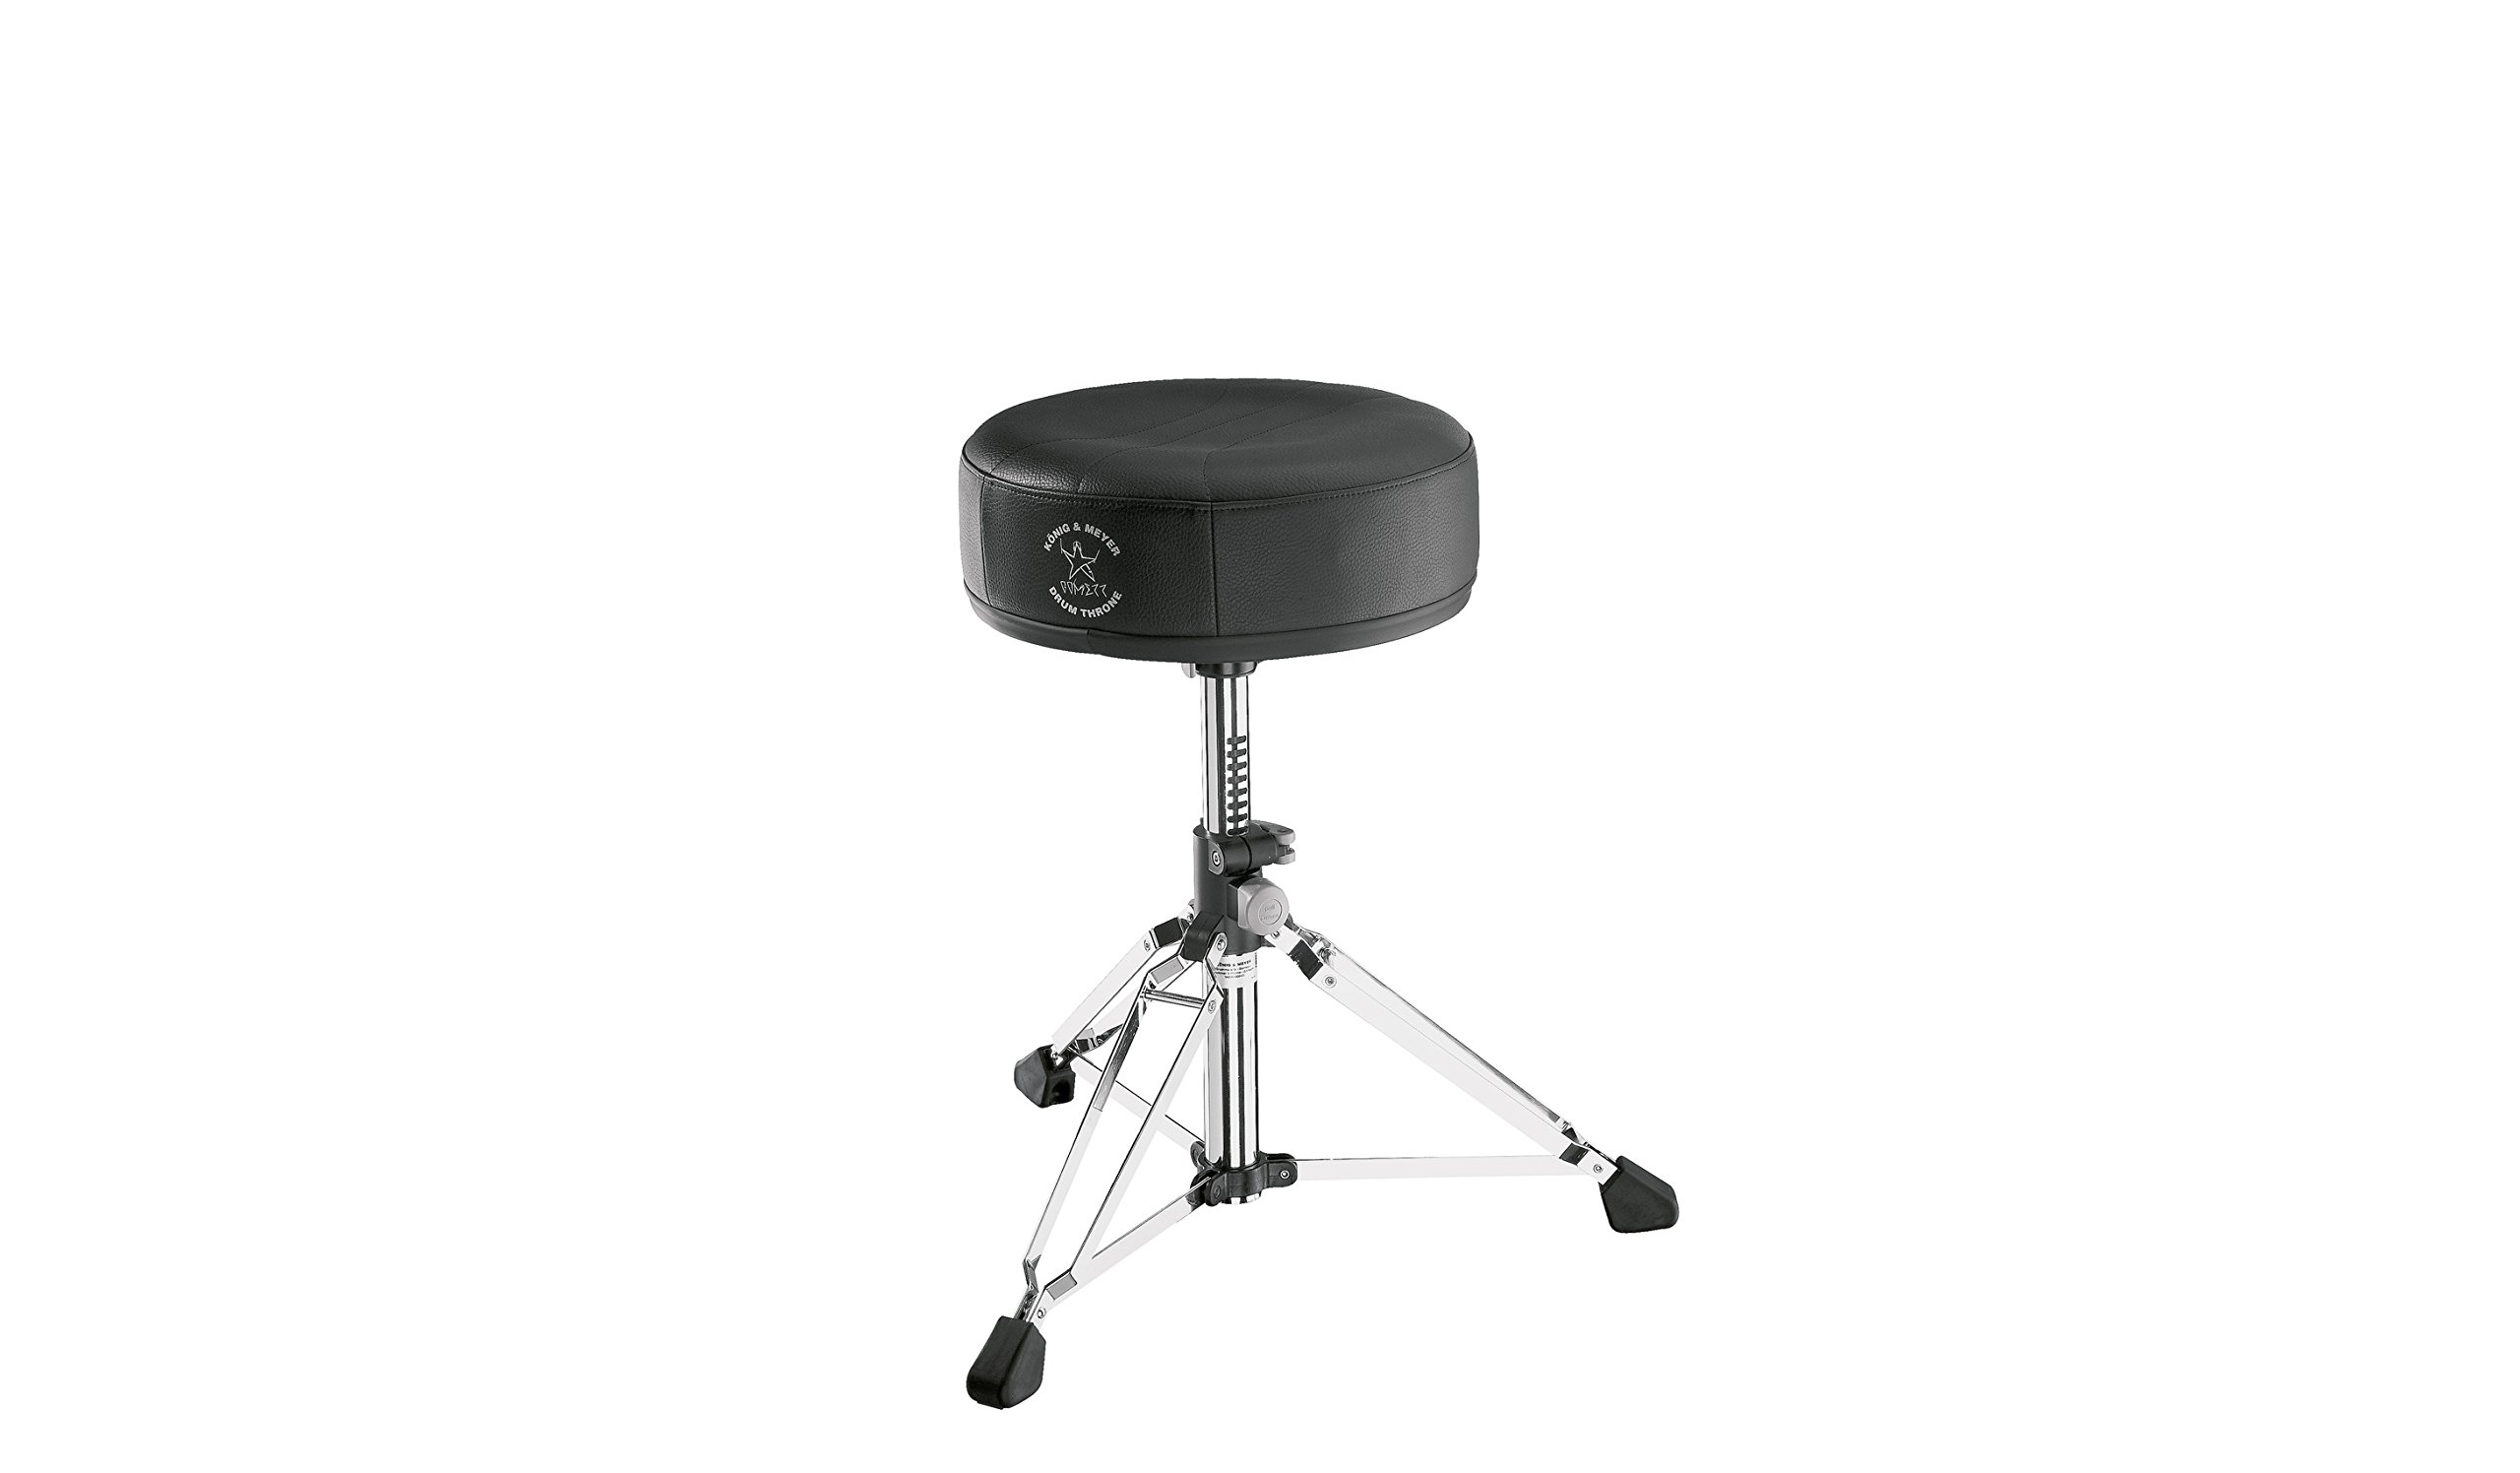 K&M Stands K&M - Drummer's throne 14007.000.02